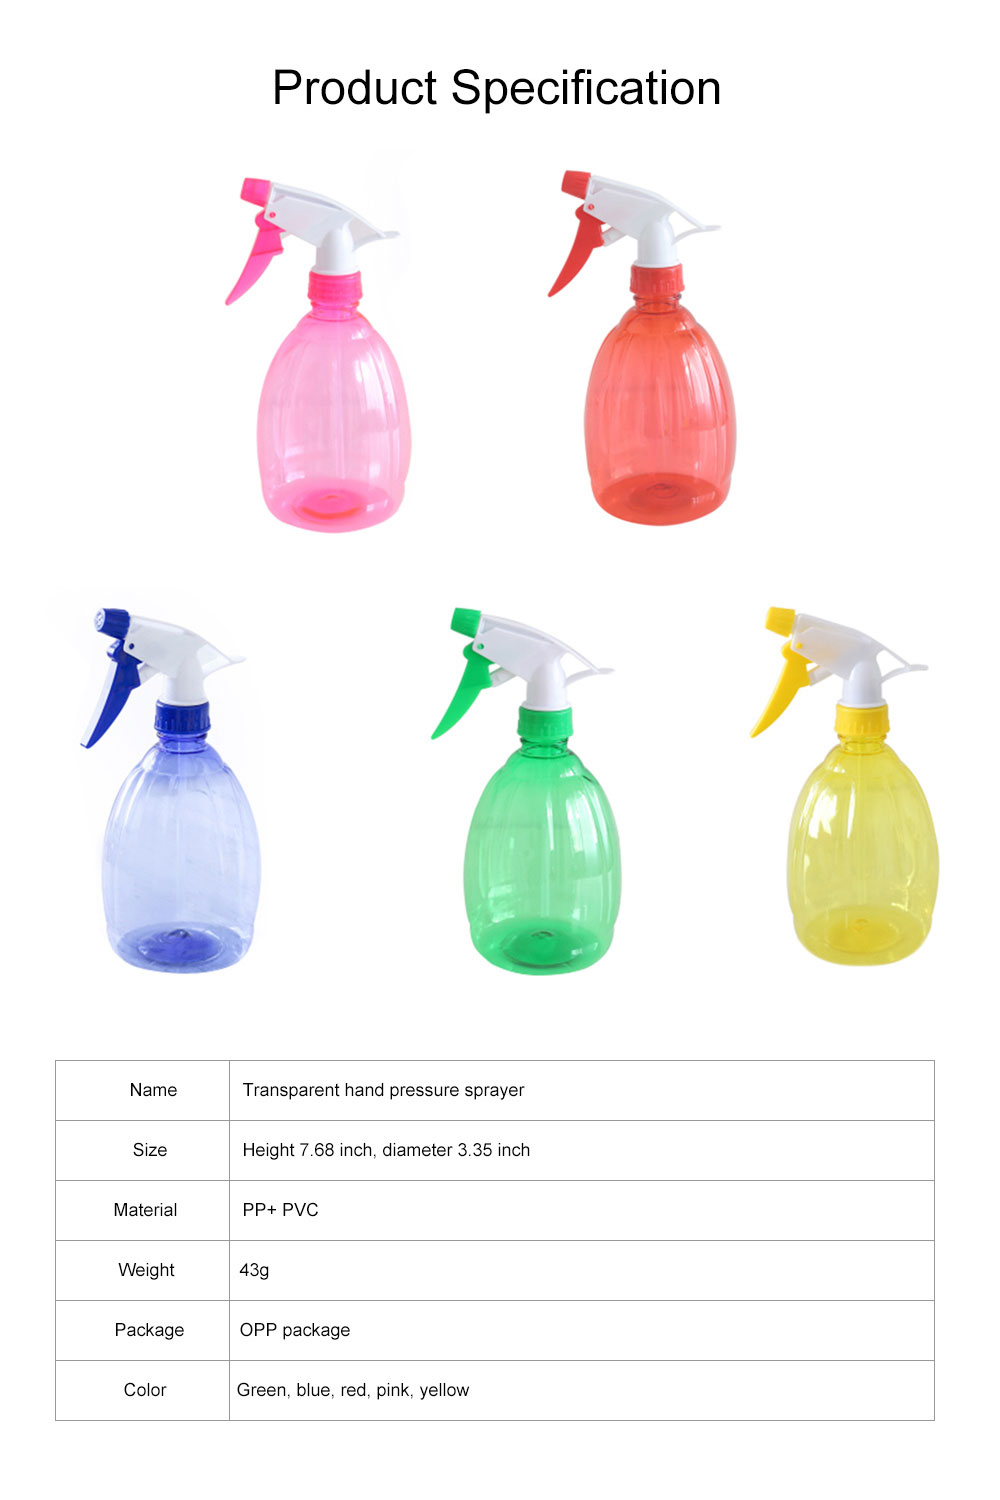 Minimalist Transparent Candy Color Hand Pressure Sprayer, Solid PP PVC Handheld Trigger Pump Watering Bottle 8